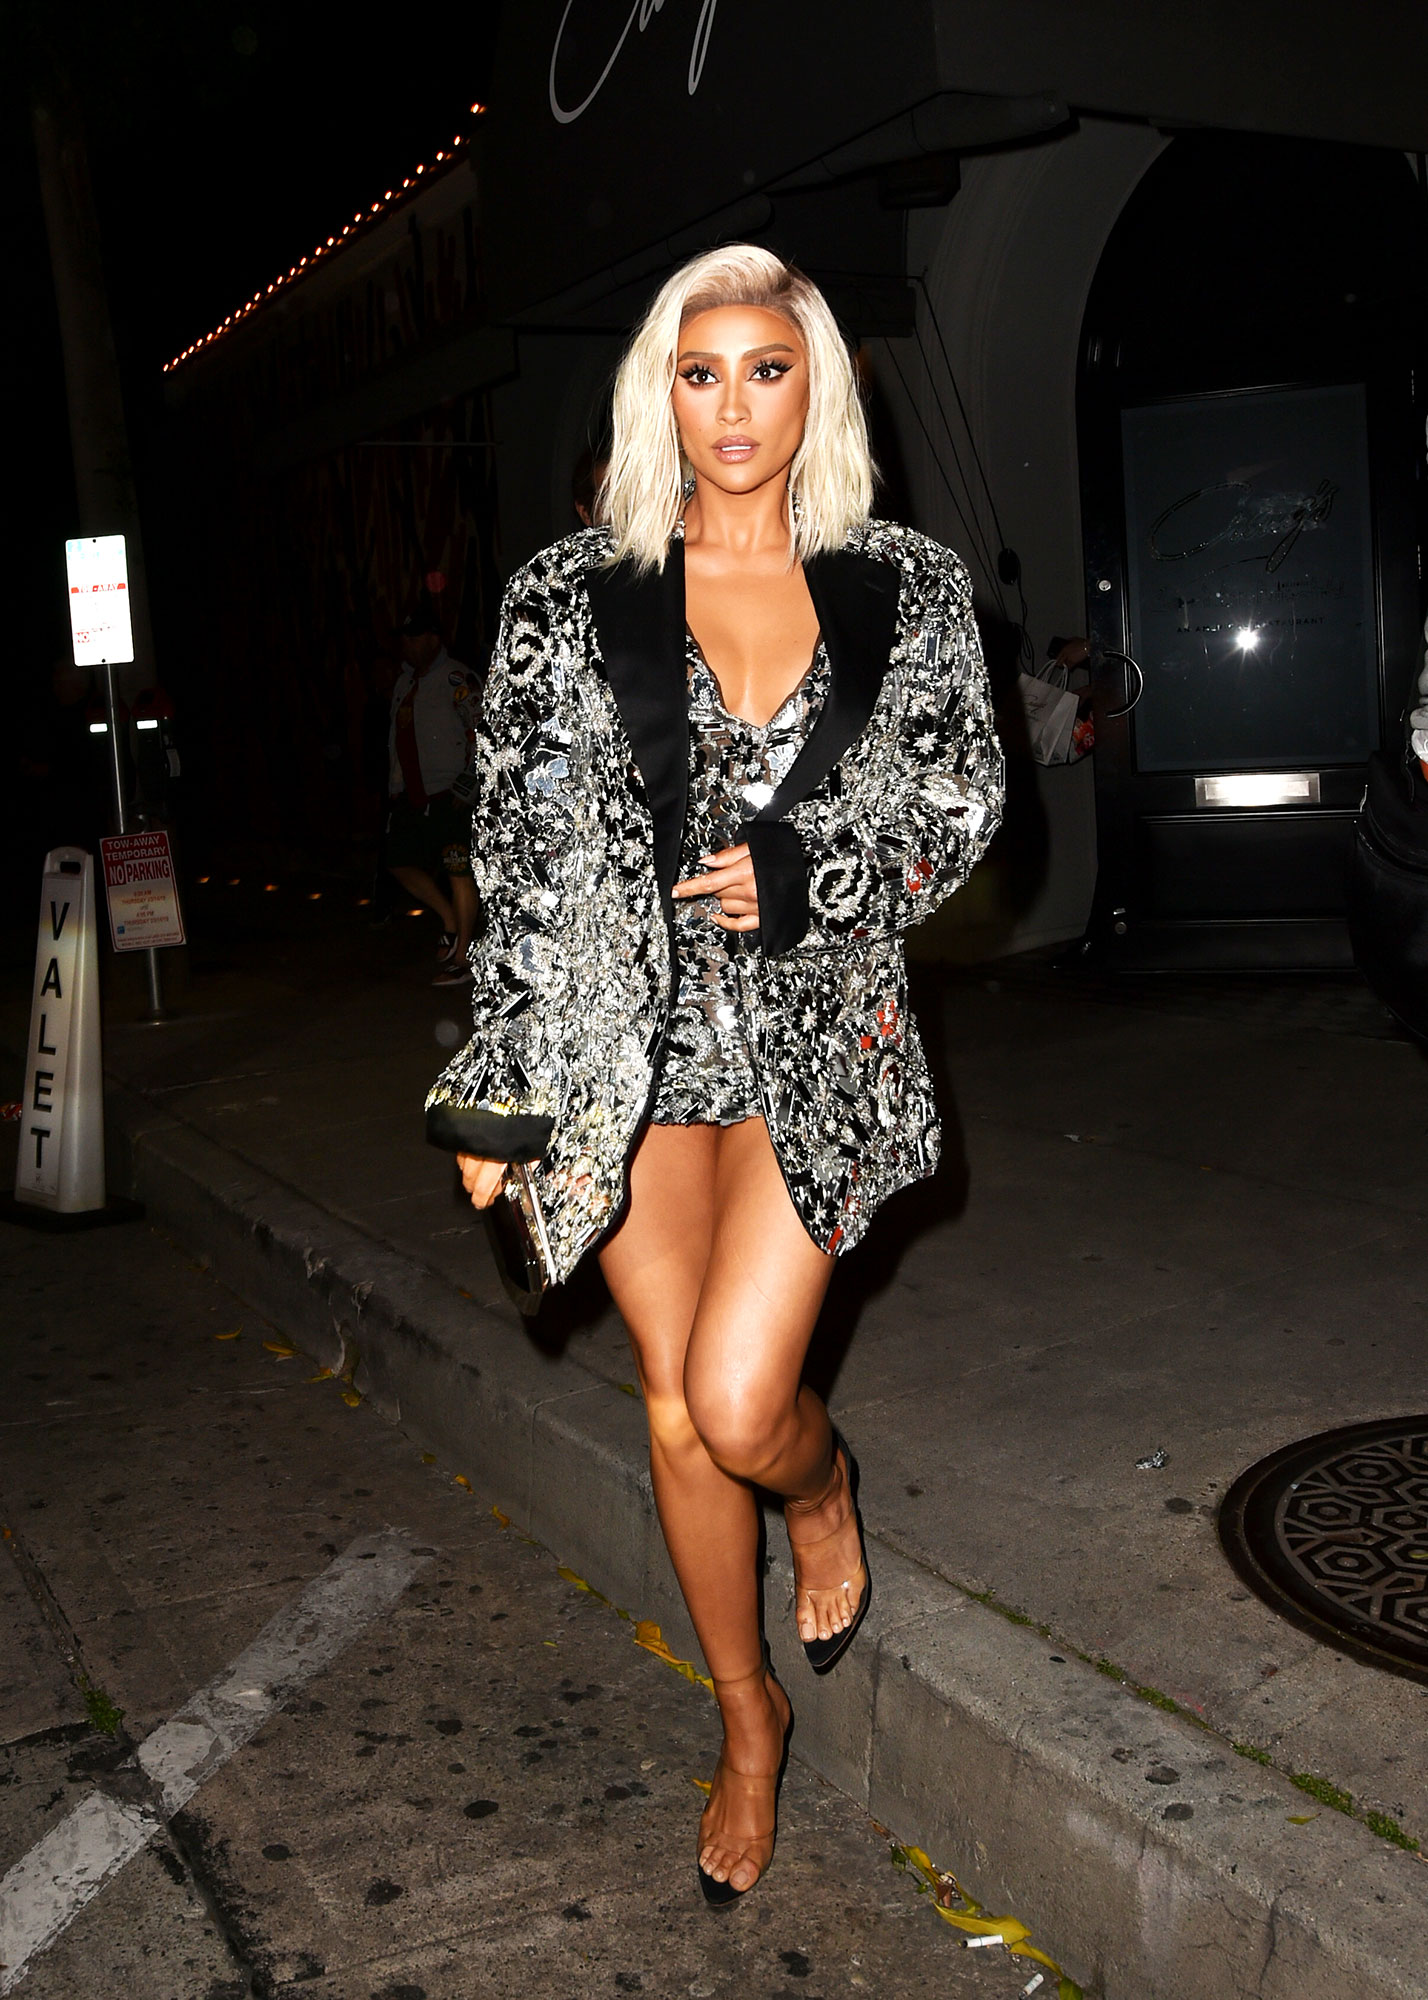 Shay Mitchell about last night - Was seen on the streets of Los Angeles after the iHeart Music Awards in a metallic sequin Nicolas Jebran dress and jacket, and Julien Macdonald shoes, Thursday, March 14.